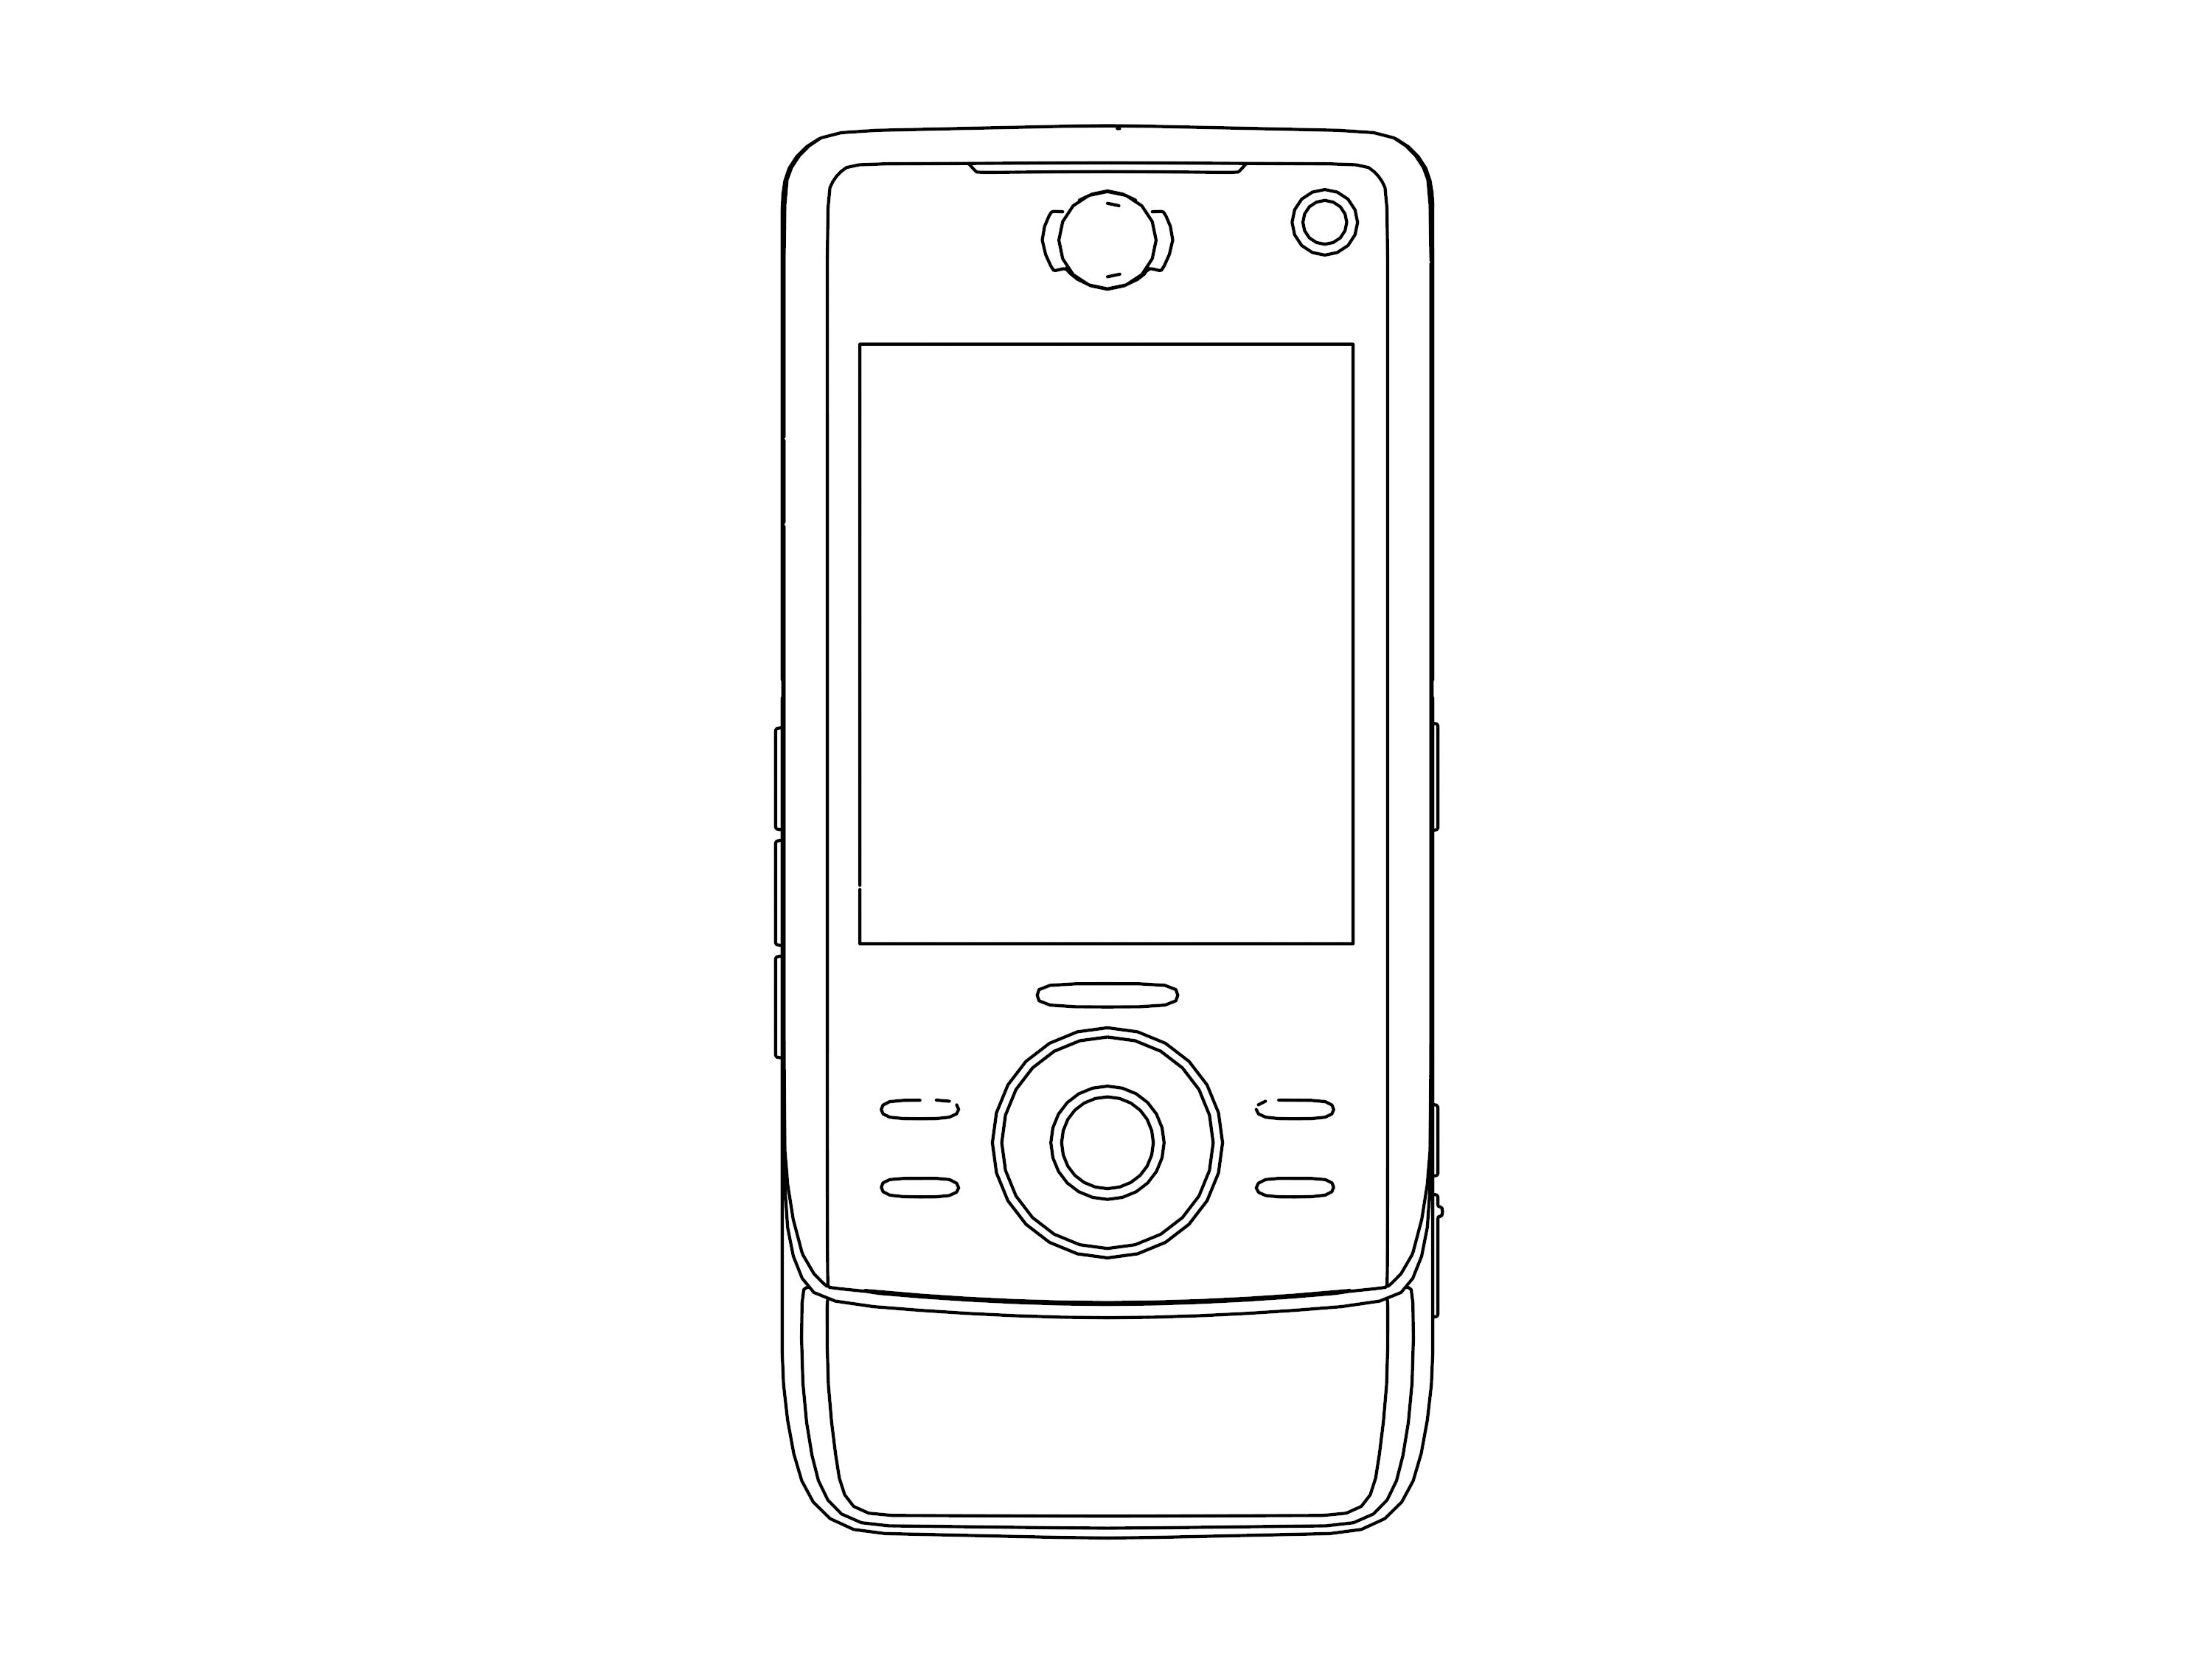 Motorola Z8 Phone Front View Coloring Page